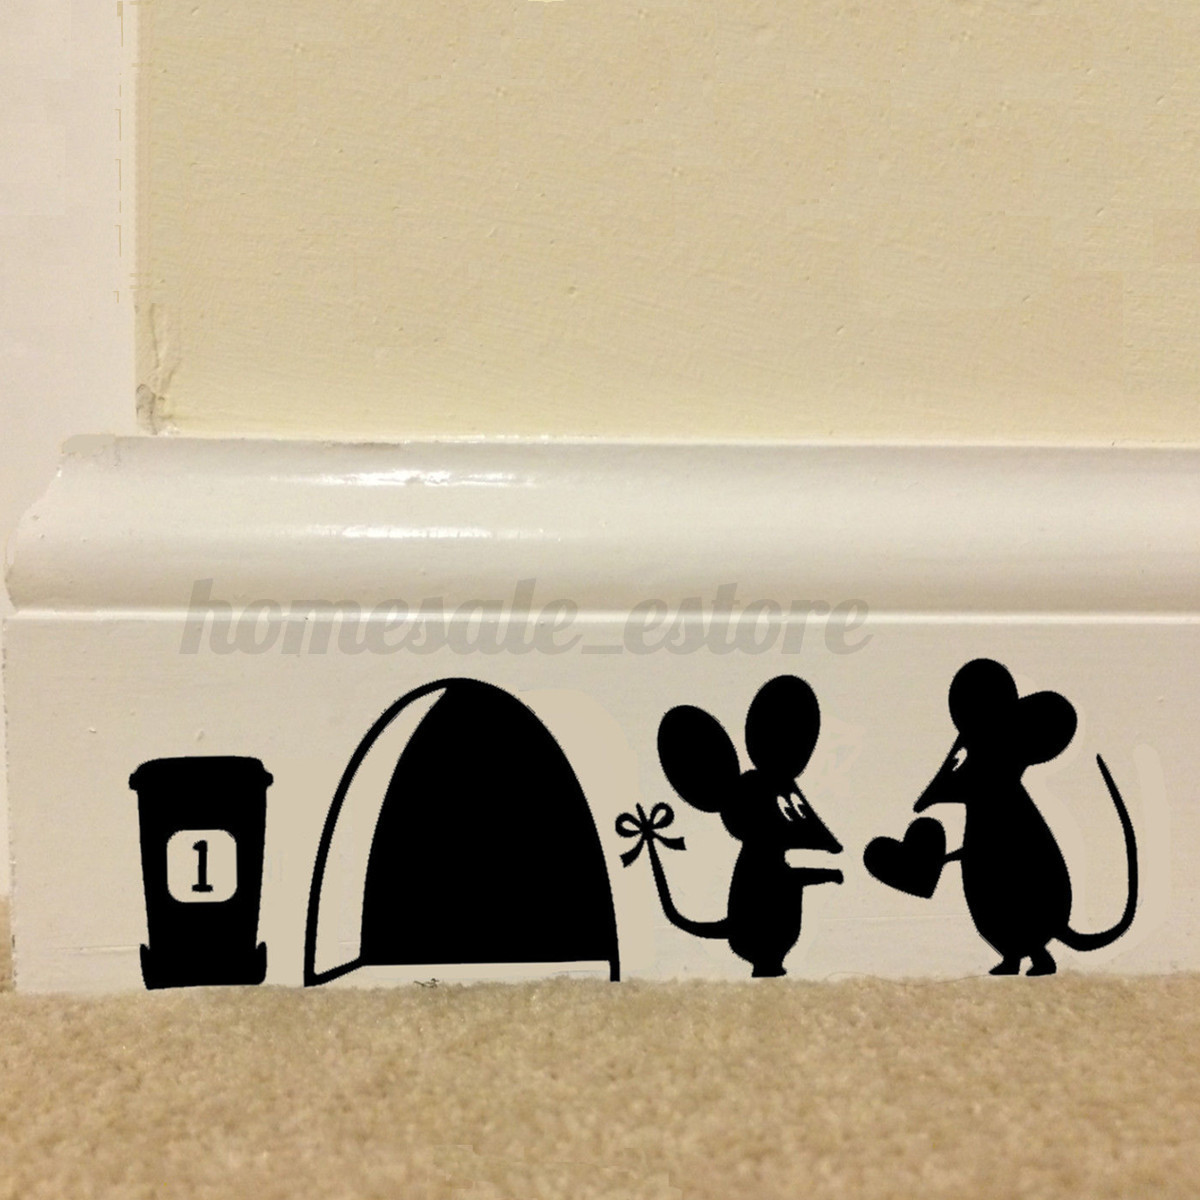 Wall Art Stickers About Family : Family diy removable art vinyl quote wall stickers decal